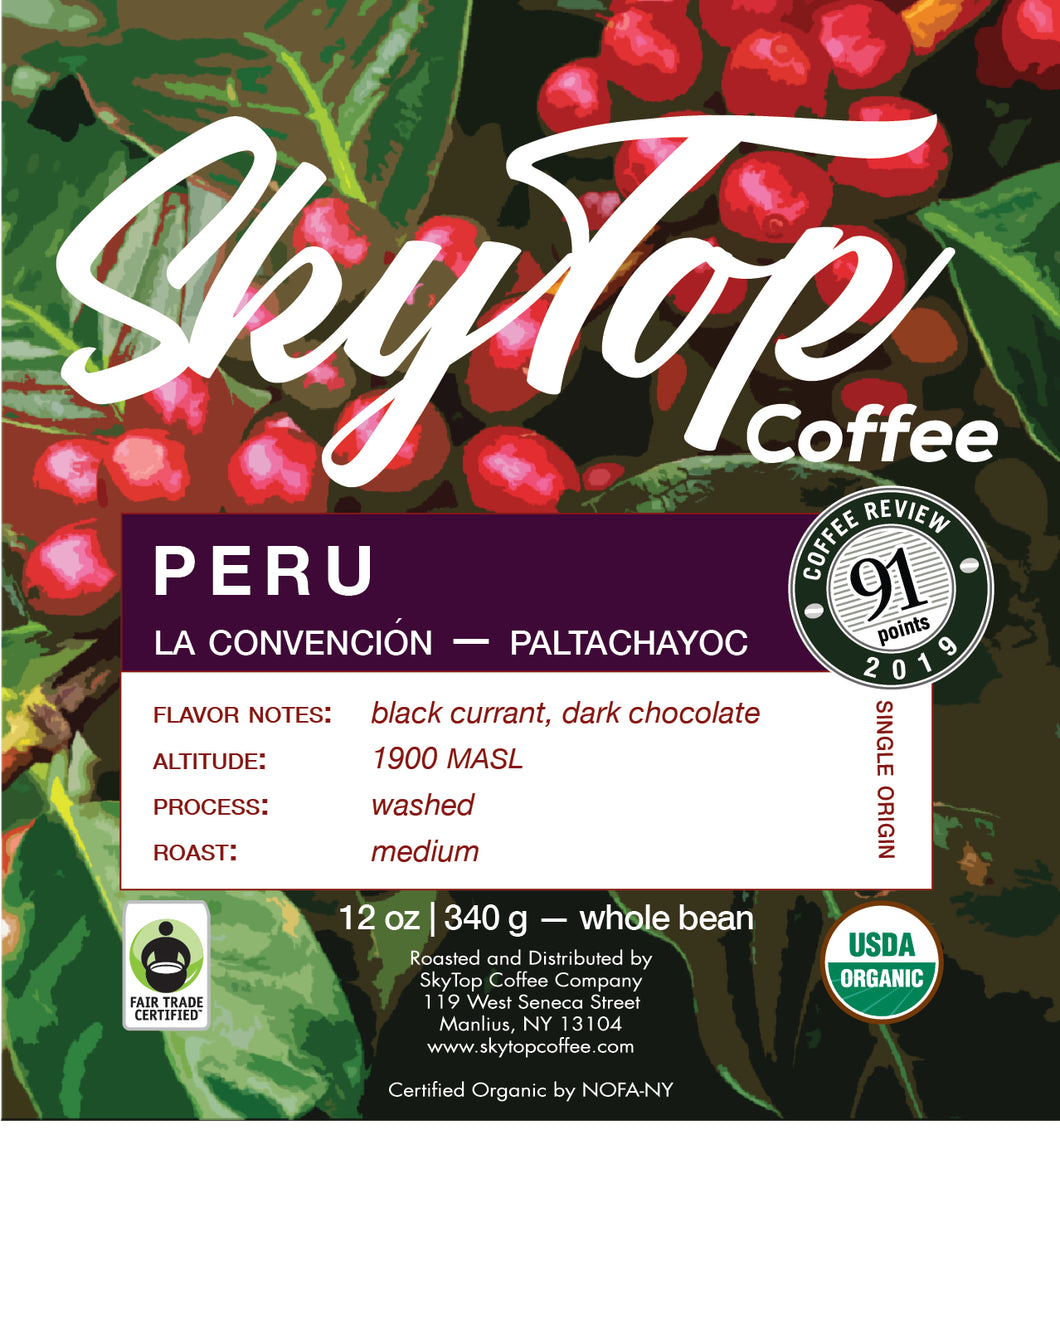 PERU-Paltachayoc **91 Rating from Coffee Review**